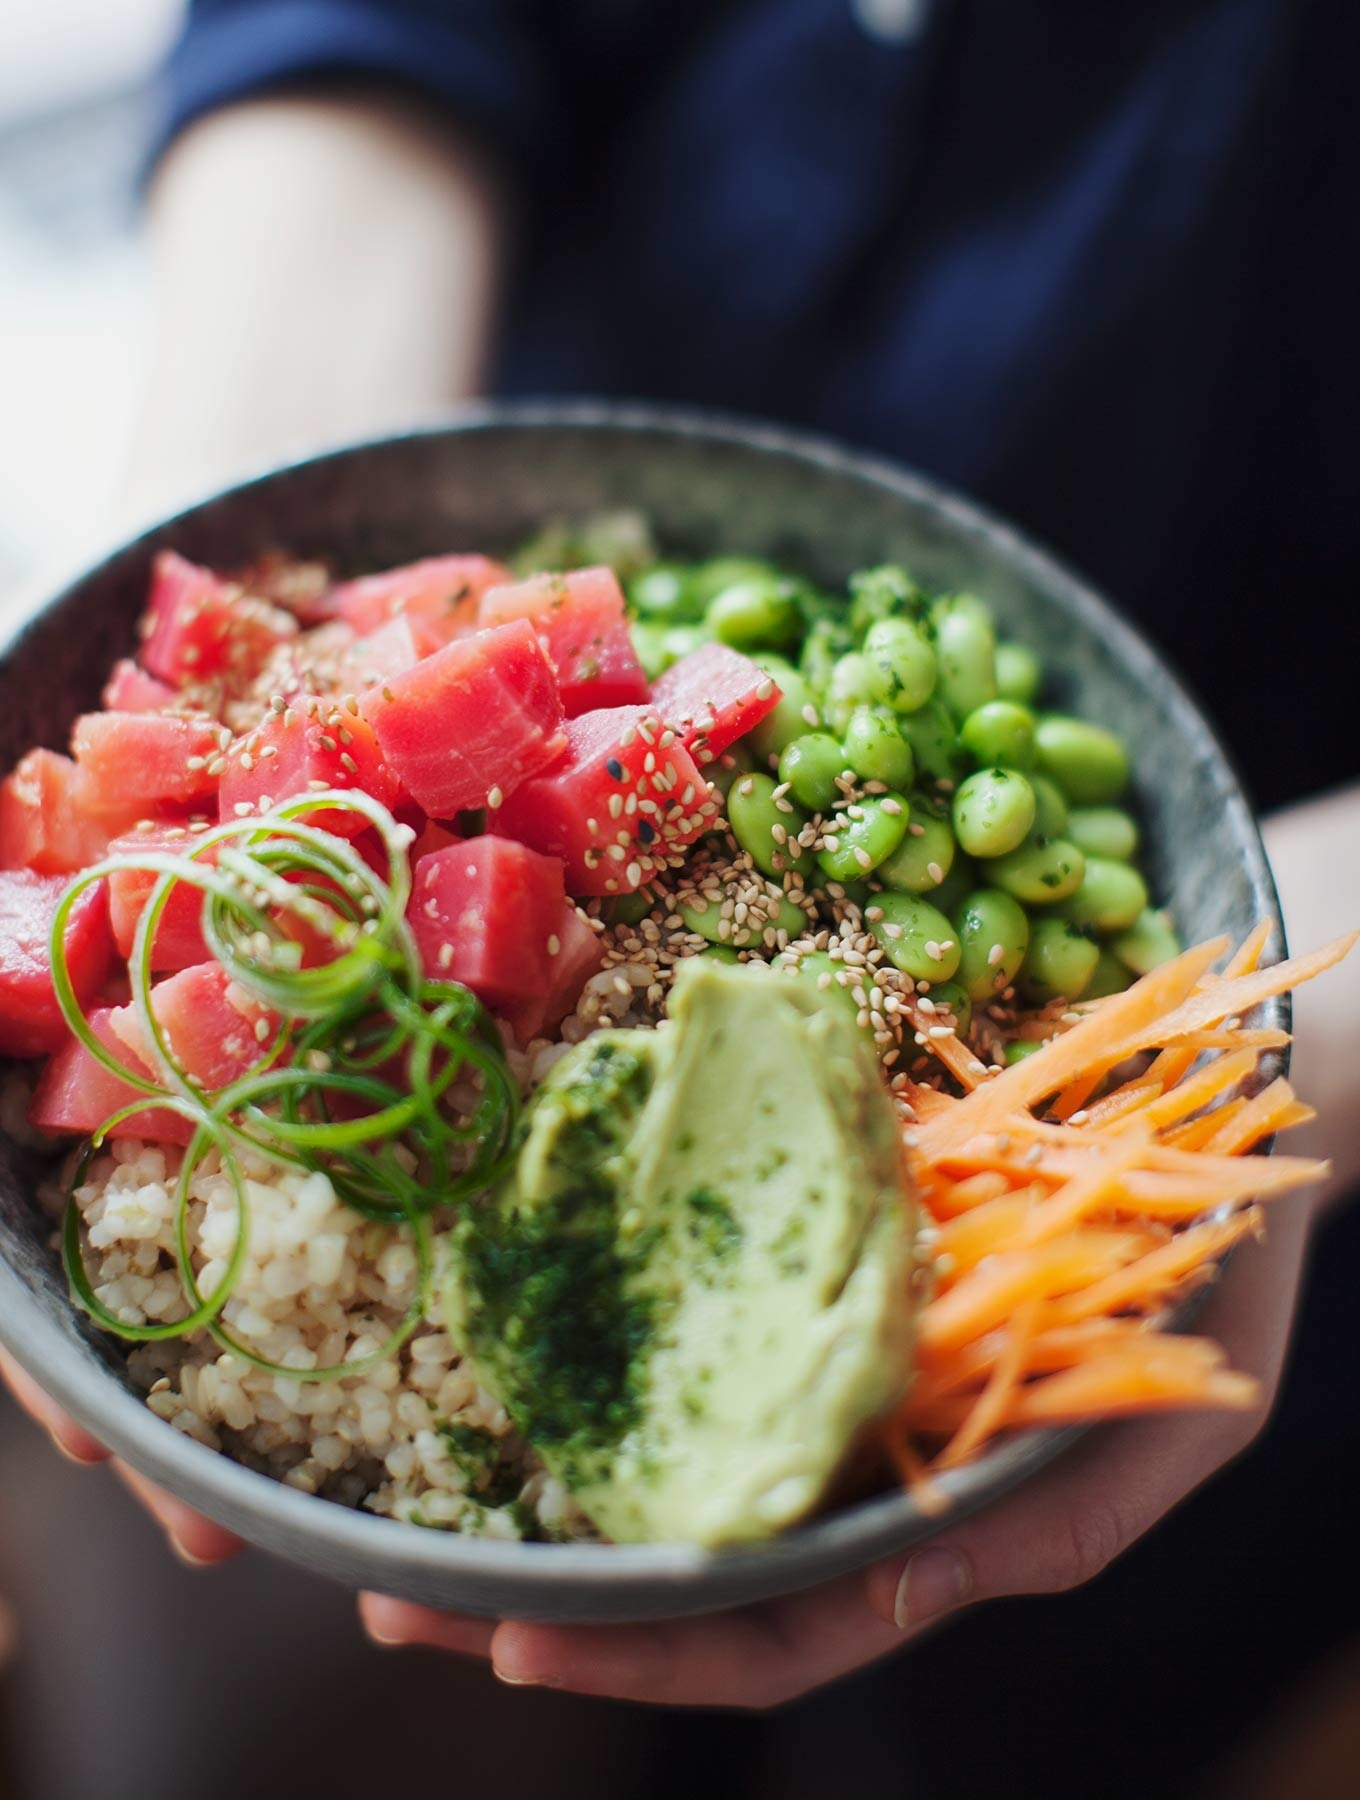 A poke bowl over rice with beets, avocado, carrots, seaweed salad, edamame, and sesame seeds.